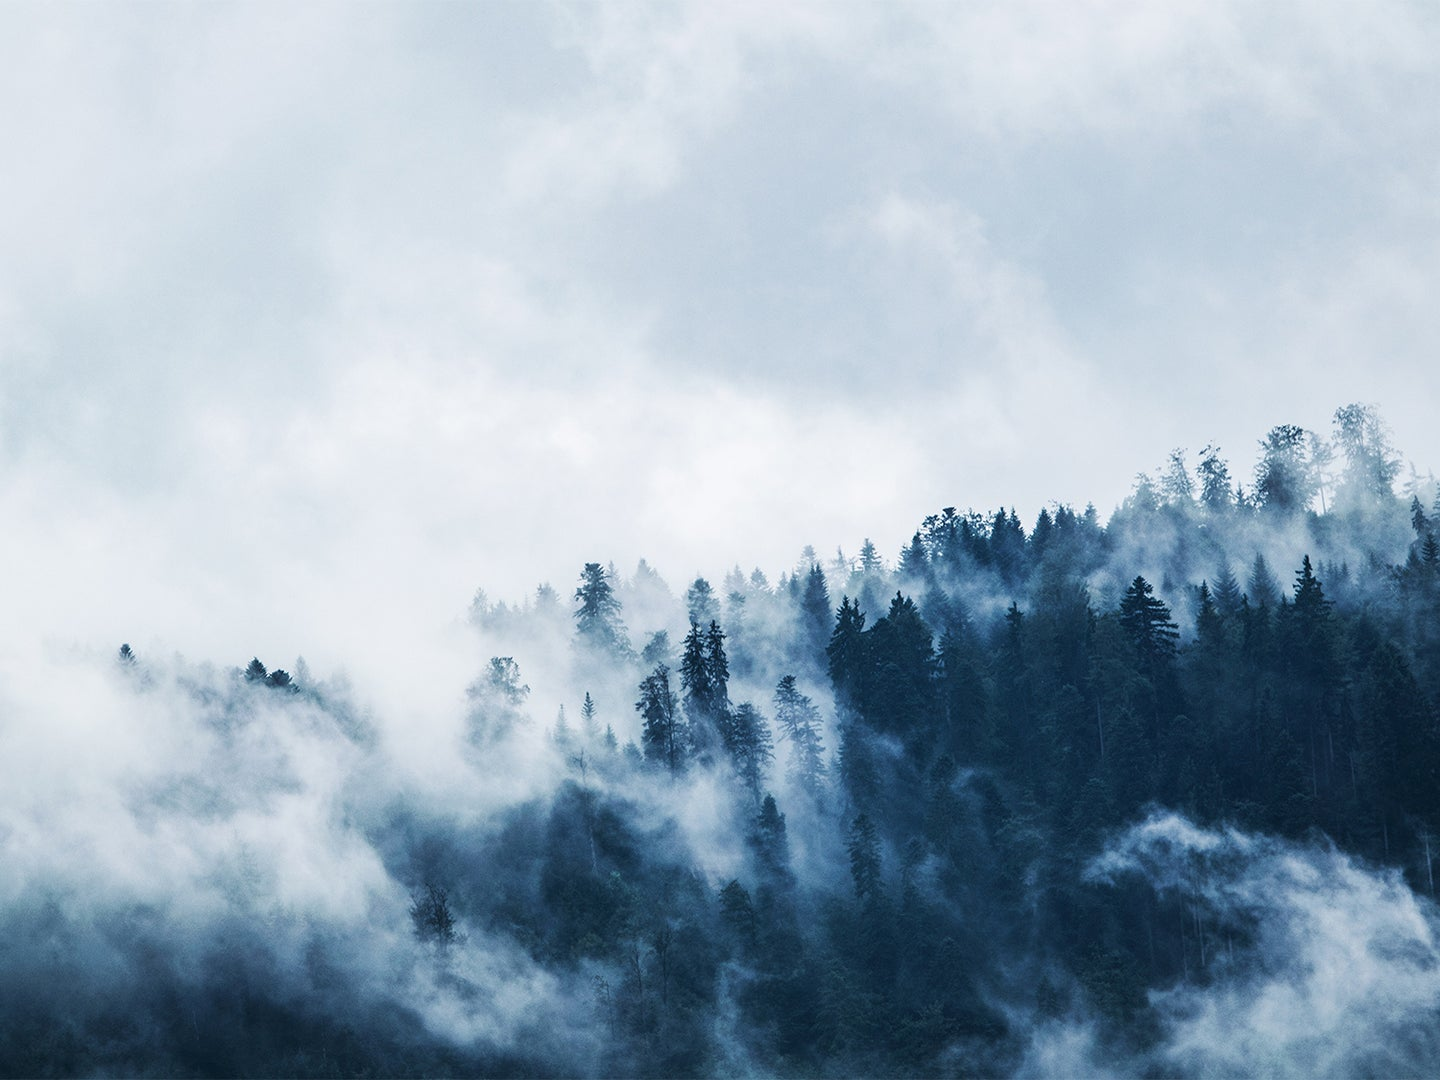 Fog billowing off a misty mountain forest.